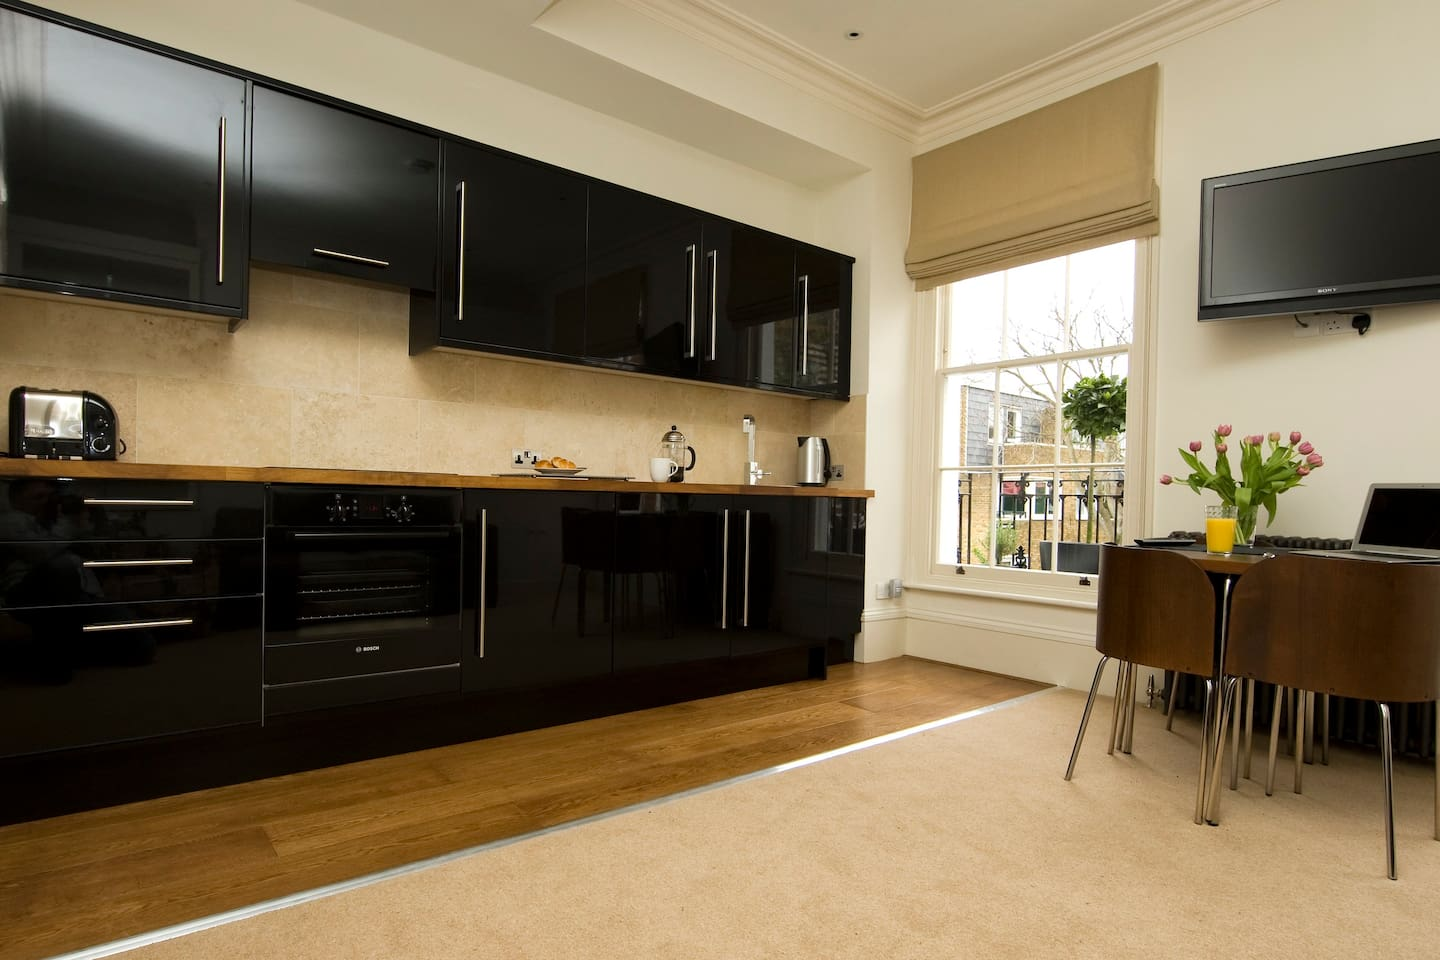 Fully equipped kitchen with washer/dryer, microwave etc